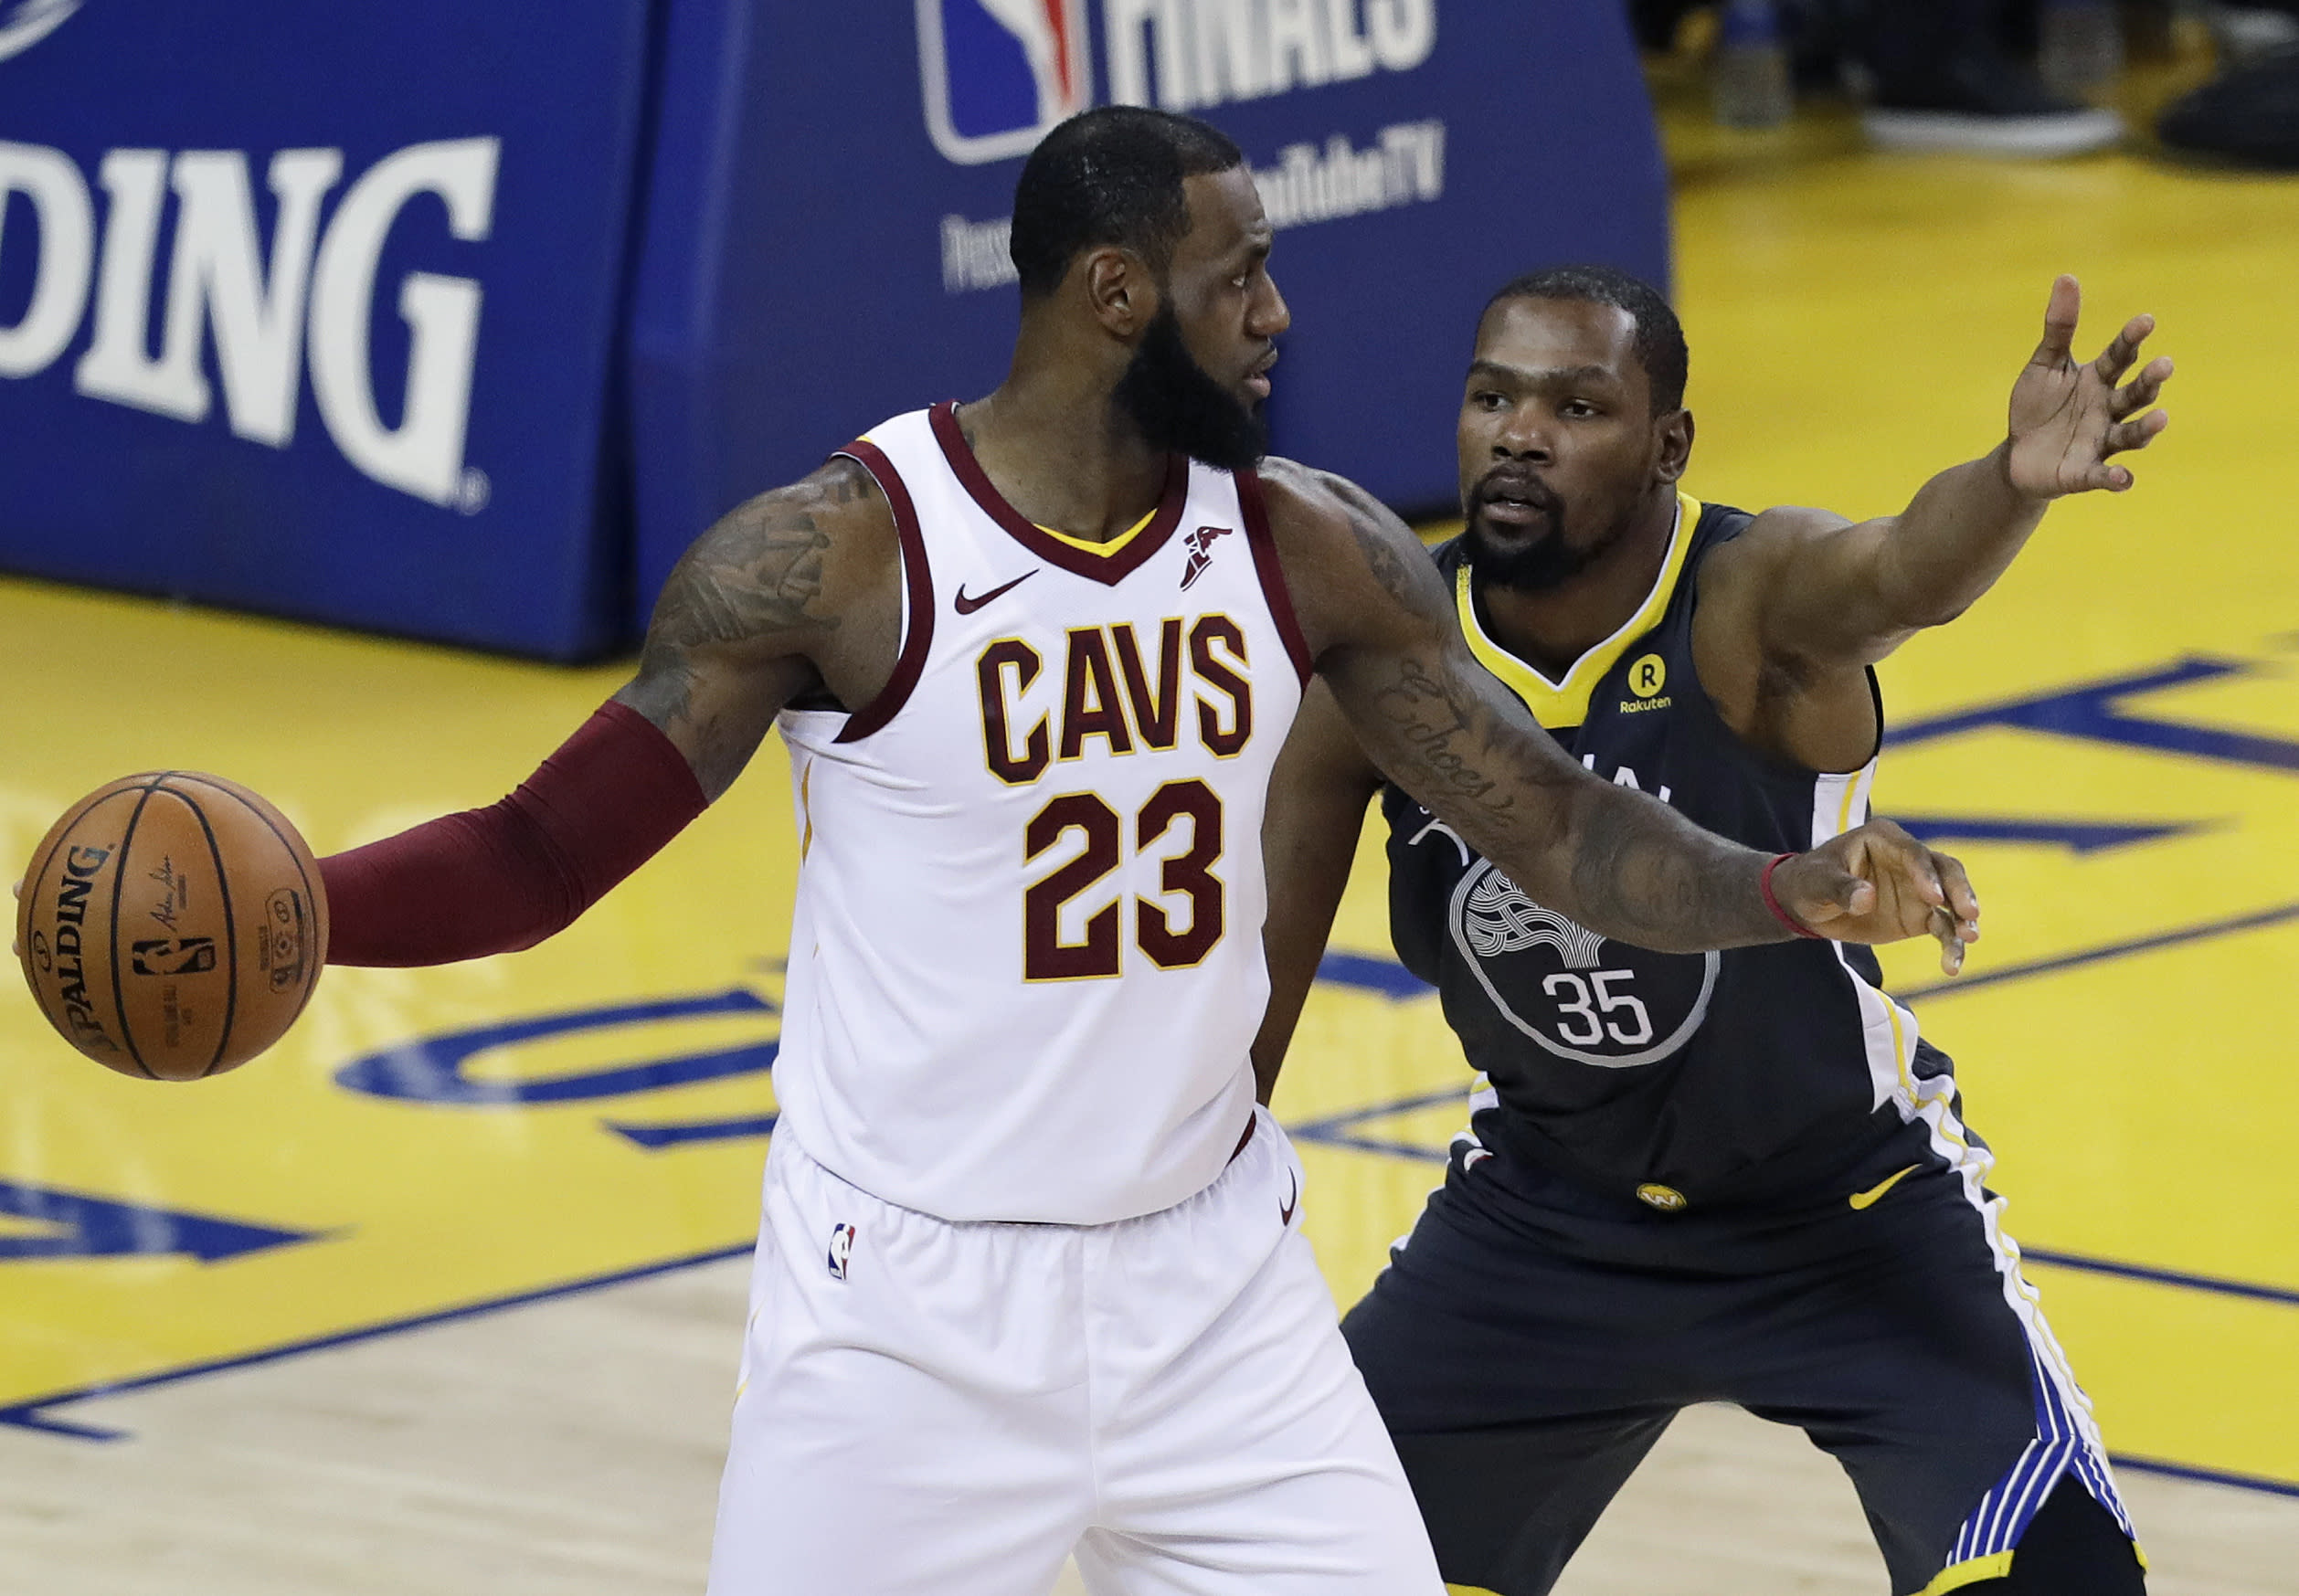 287e74bd79cf It was hard for LeBron James to stay away from the topic of Kevin Durant on  Wednesday night. The Cleveland Cavaliers had just lost Game 3 of the NBA  Finals ...